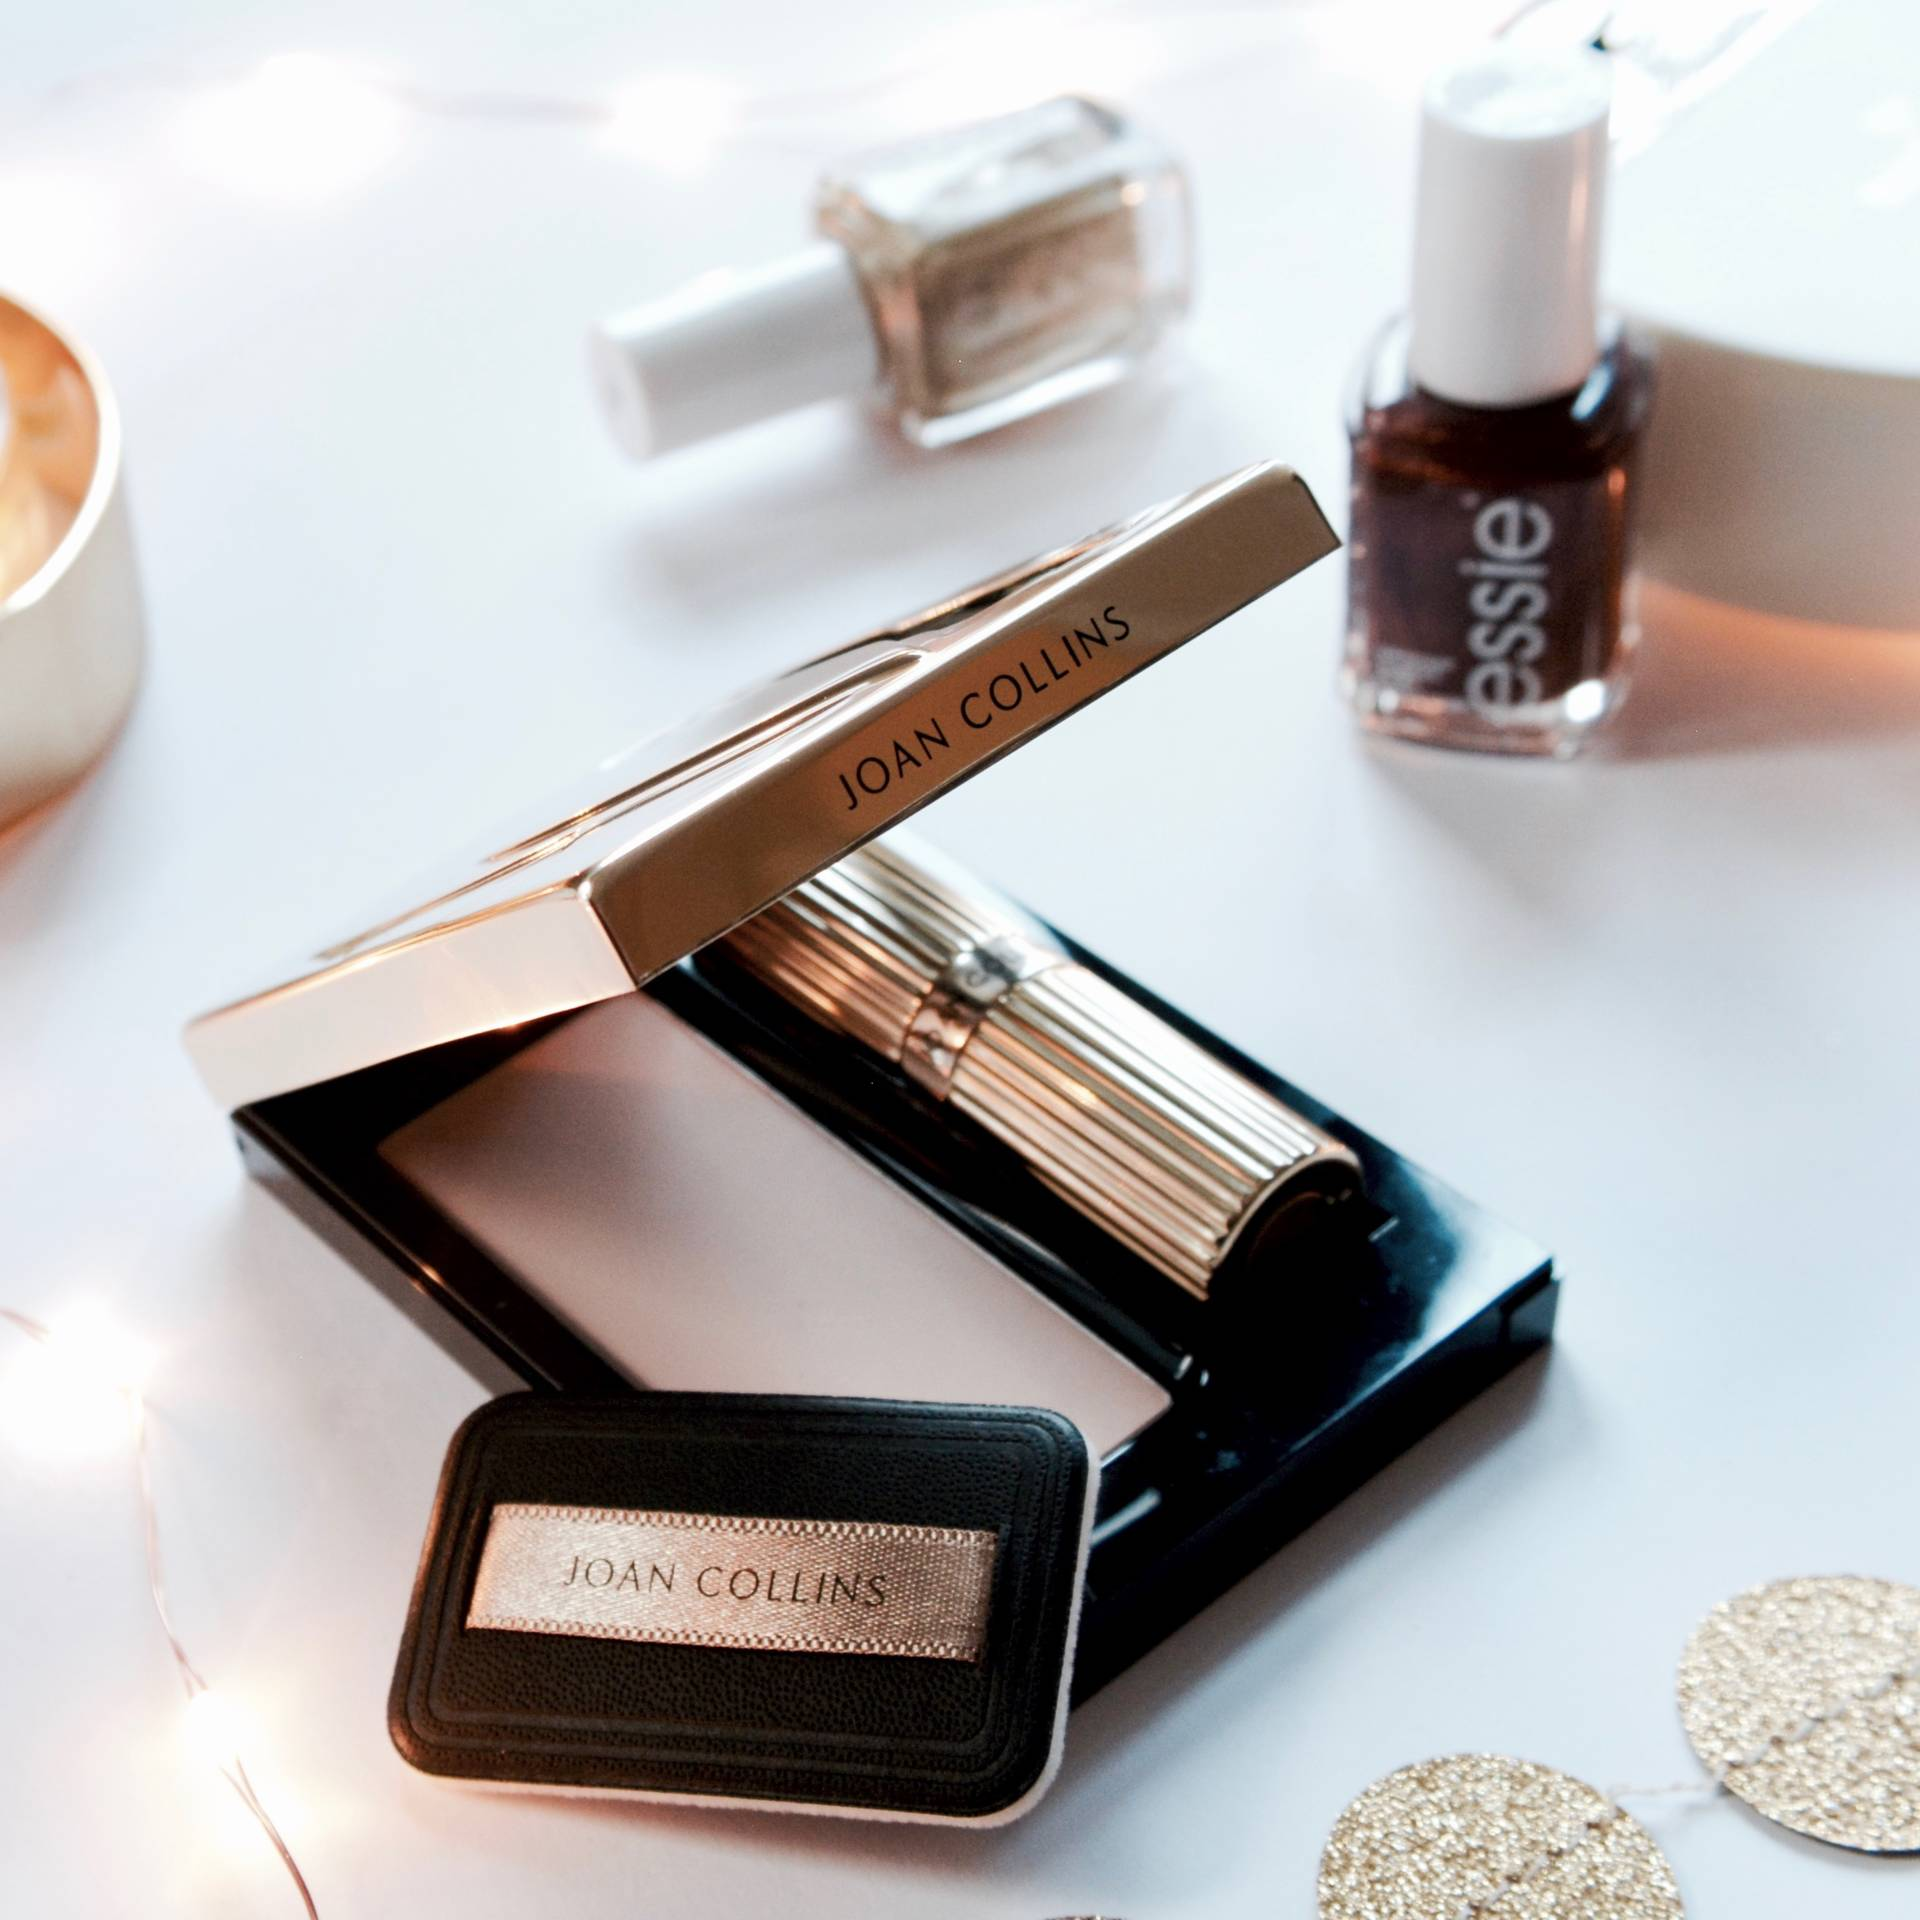 Last Minute Gift Guide: Joan Collins Timeless Beauty Compact Duo